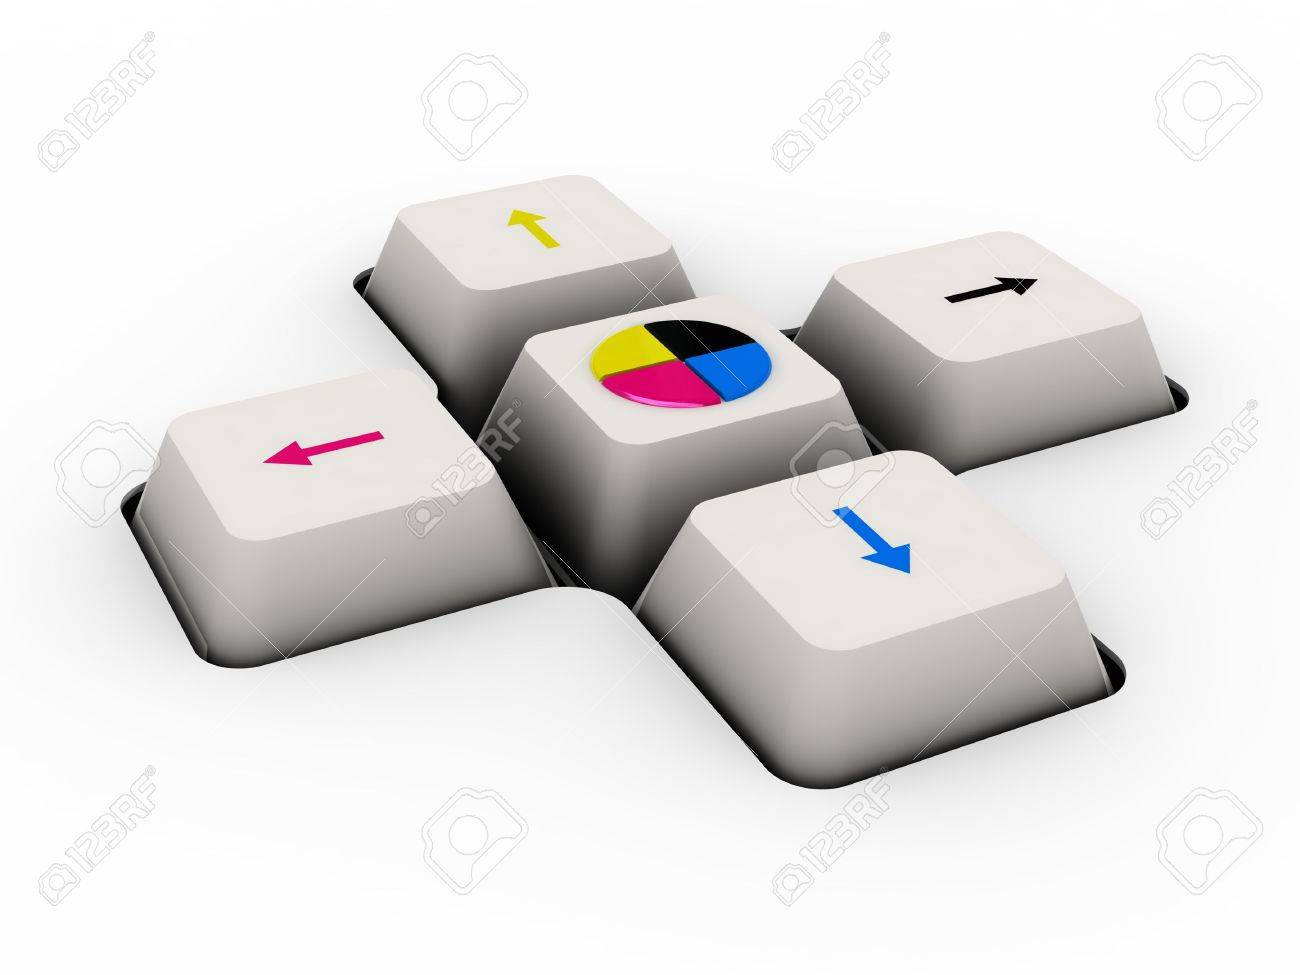 cmyk keyboard button (image can be used for printing or web) - 11556563